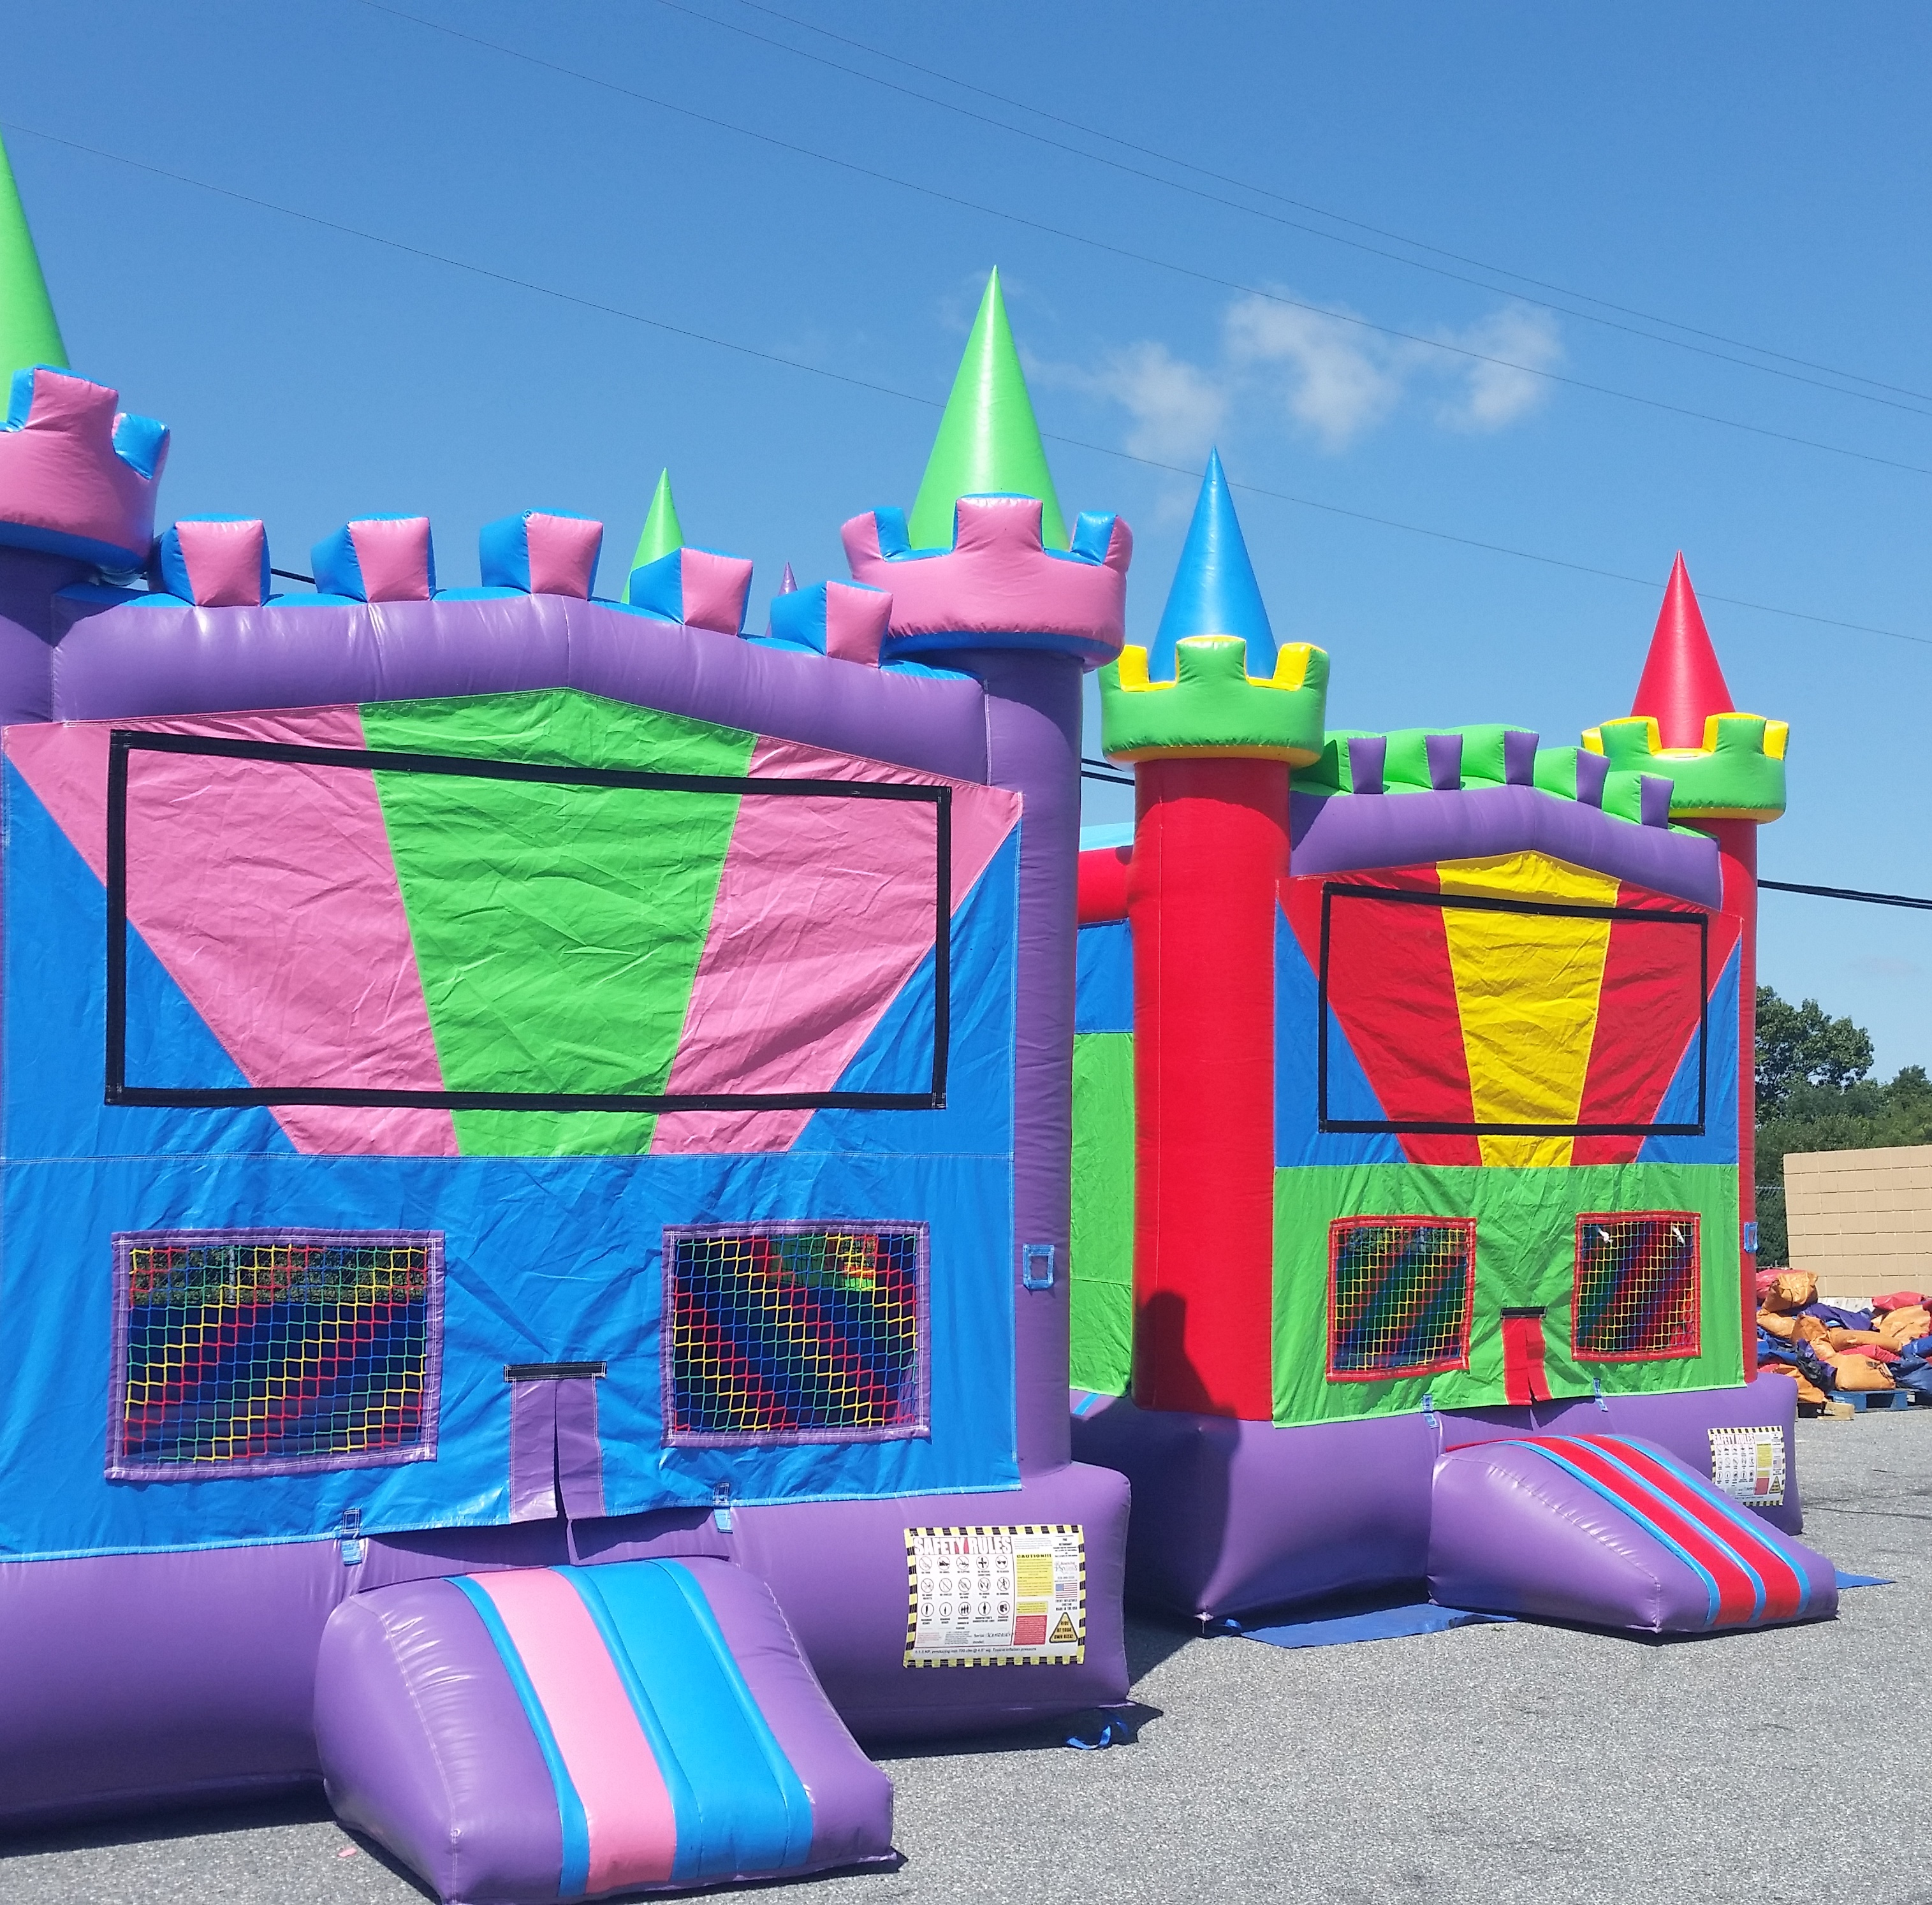 South Jerseys one stop shop for Inflatable Rentals Entertainment